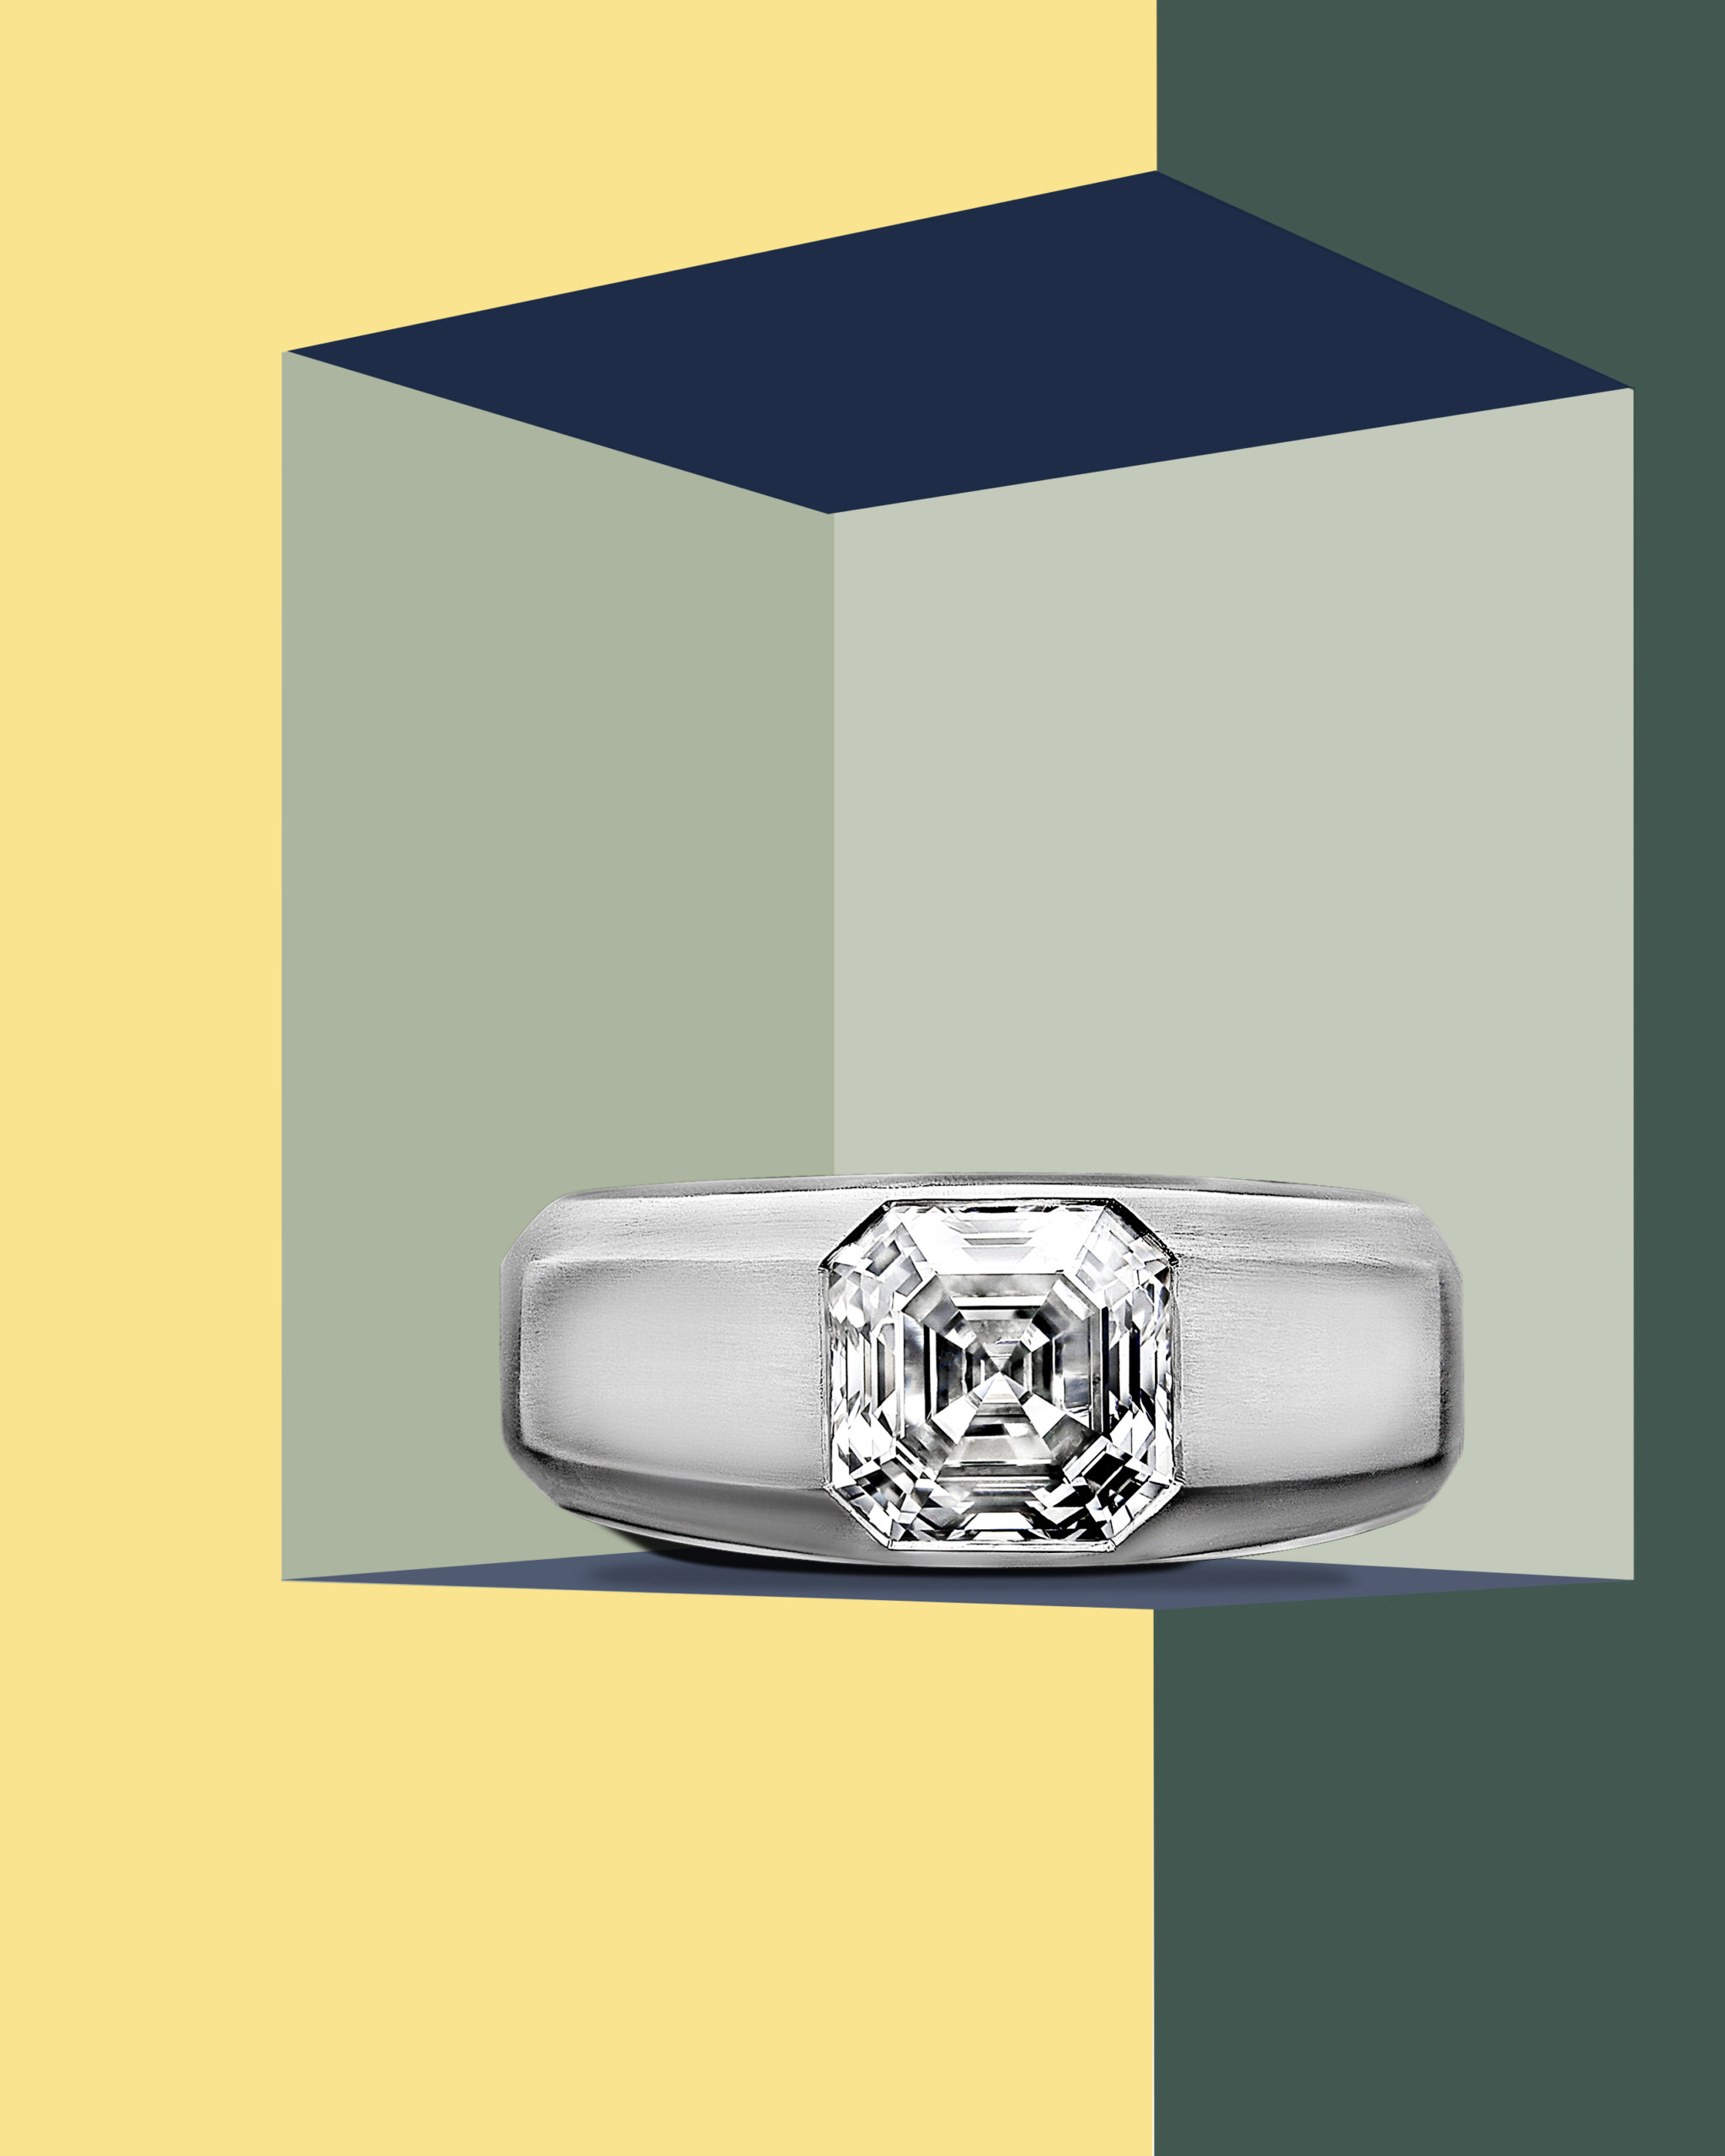 Beveled edge platinum gypsy set ring with a center Asscher cut diamond from Hancocks